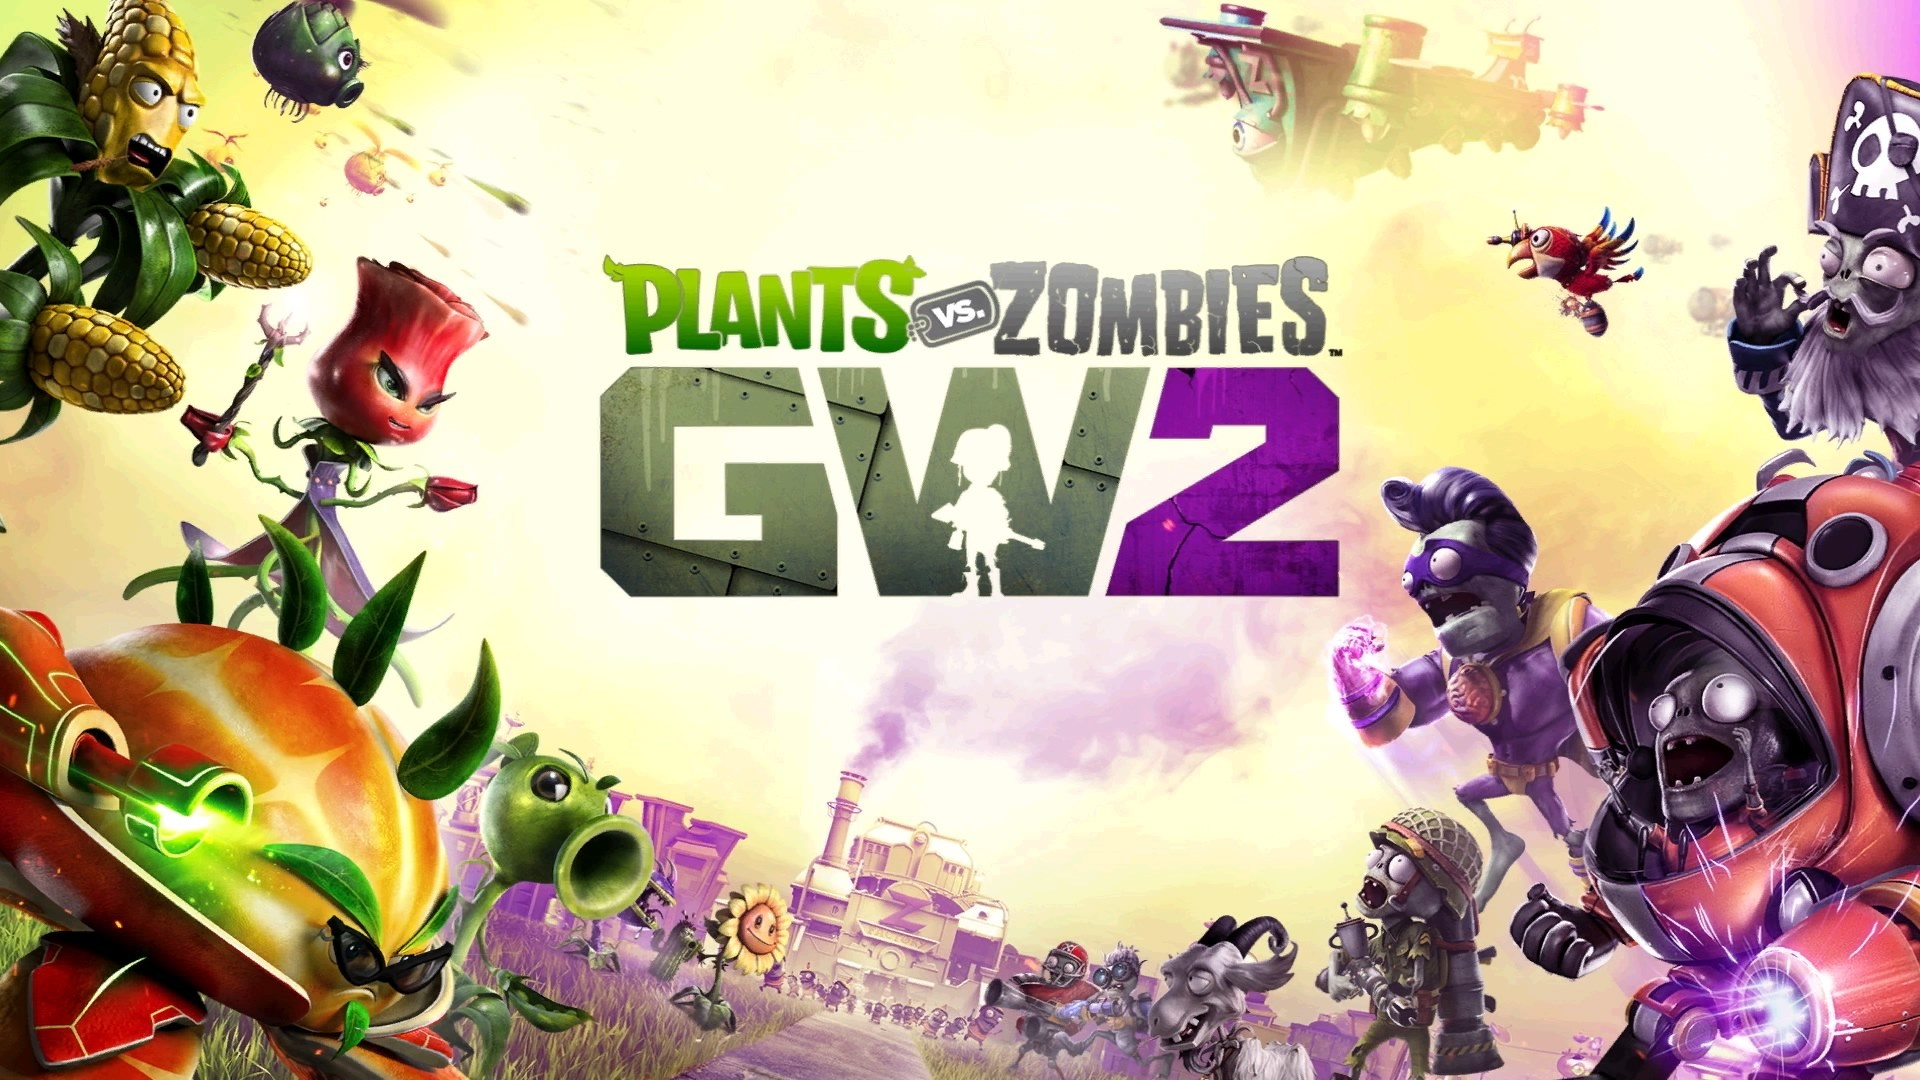 Plants Vs Zombies Best Wallpapers Supertab Themes